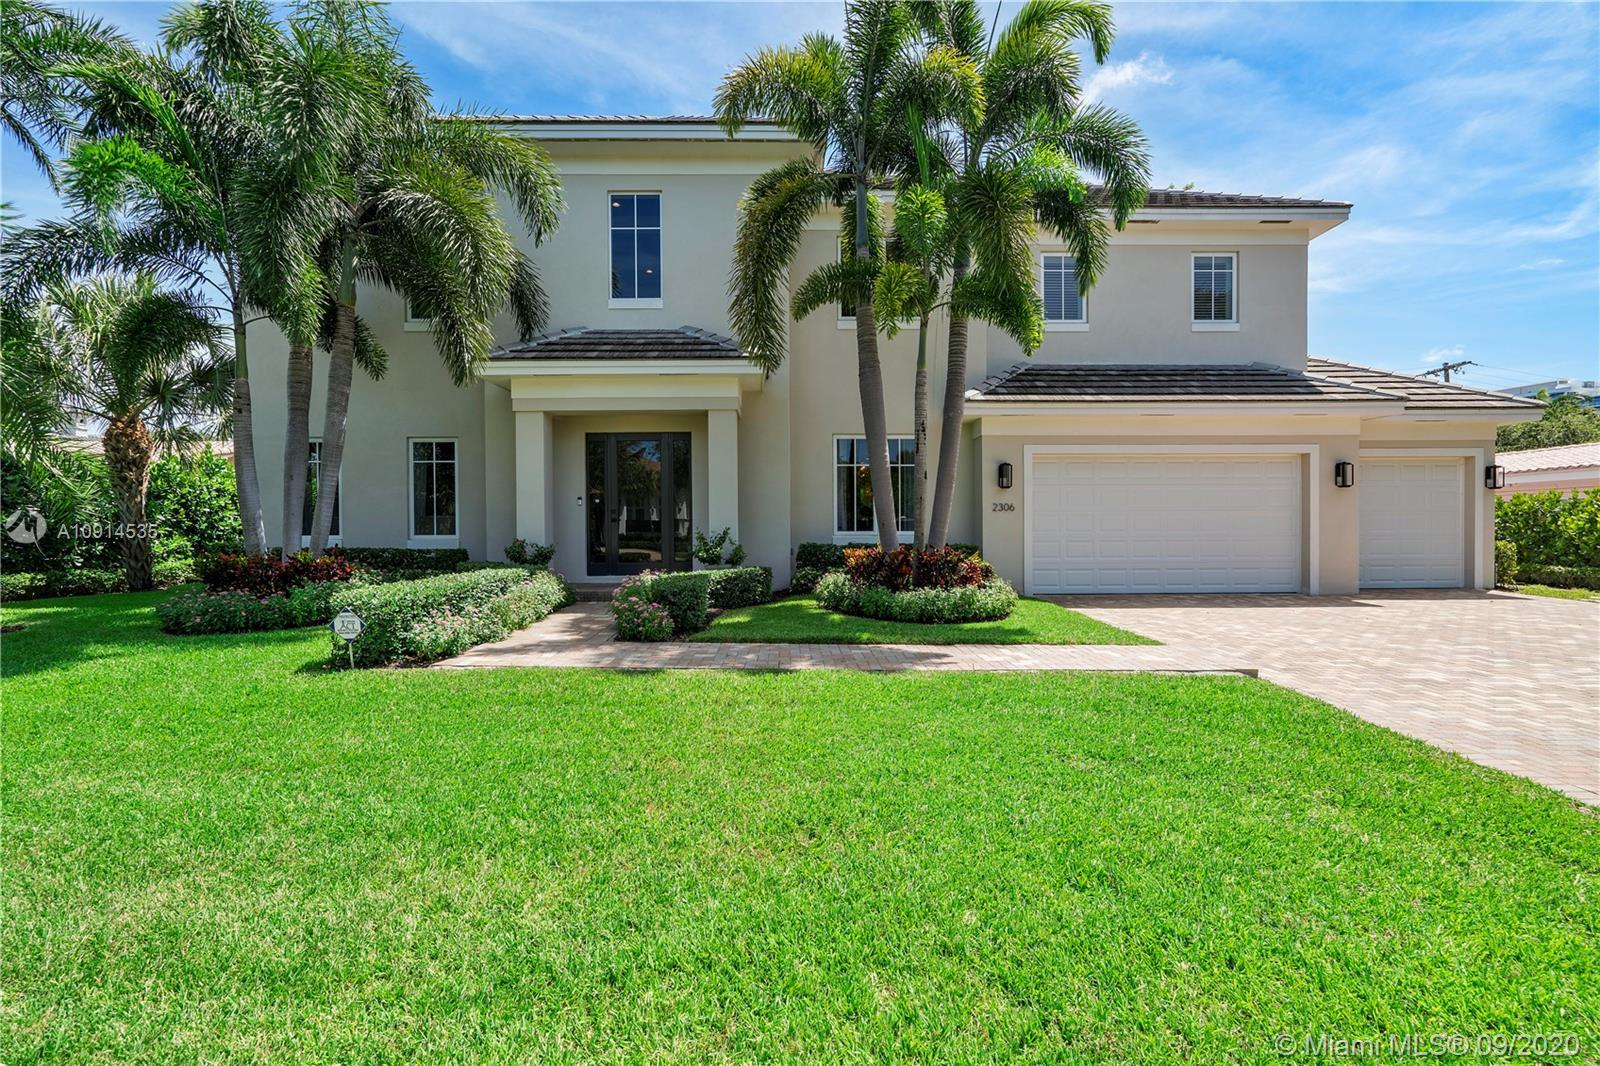 Custom Built In 2017 Beautiful 2 Story 5 Bed, 5.5 Bath Pool Home W/3 Car Garage Located In Coral Rid